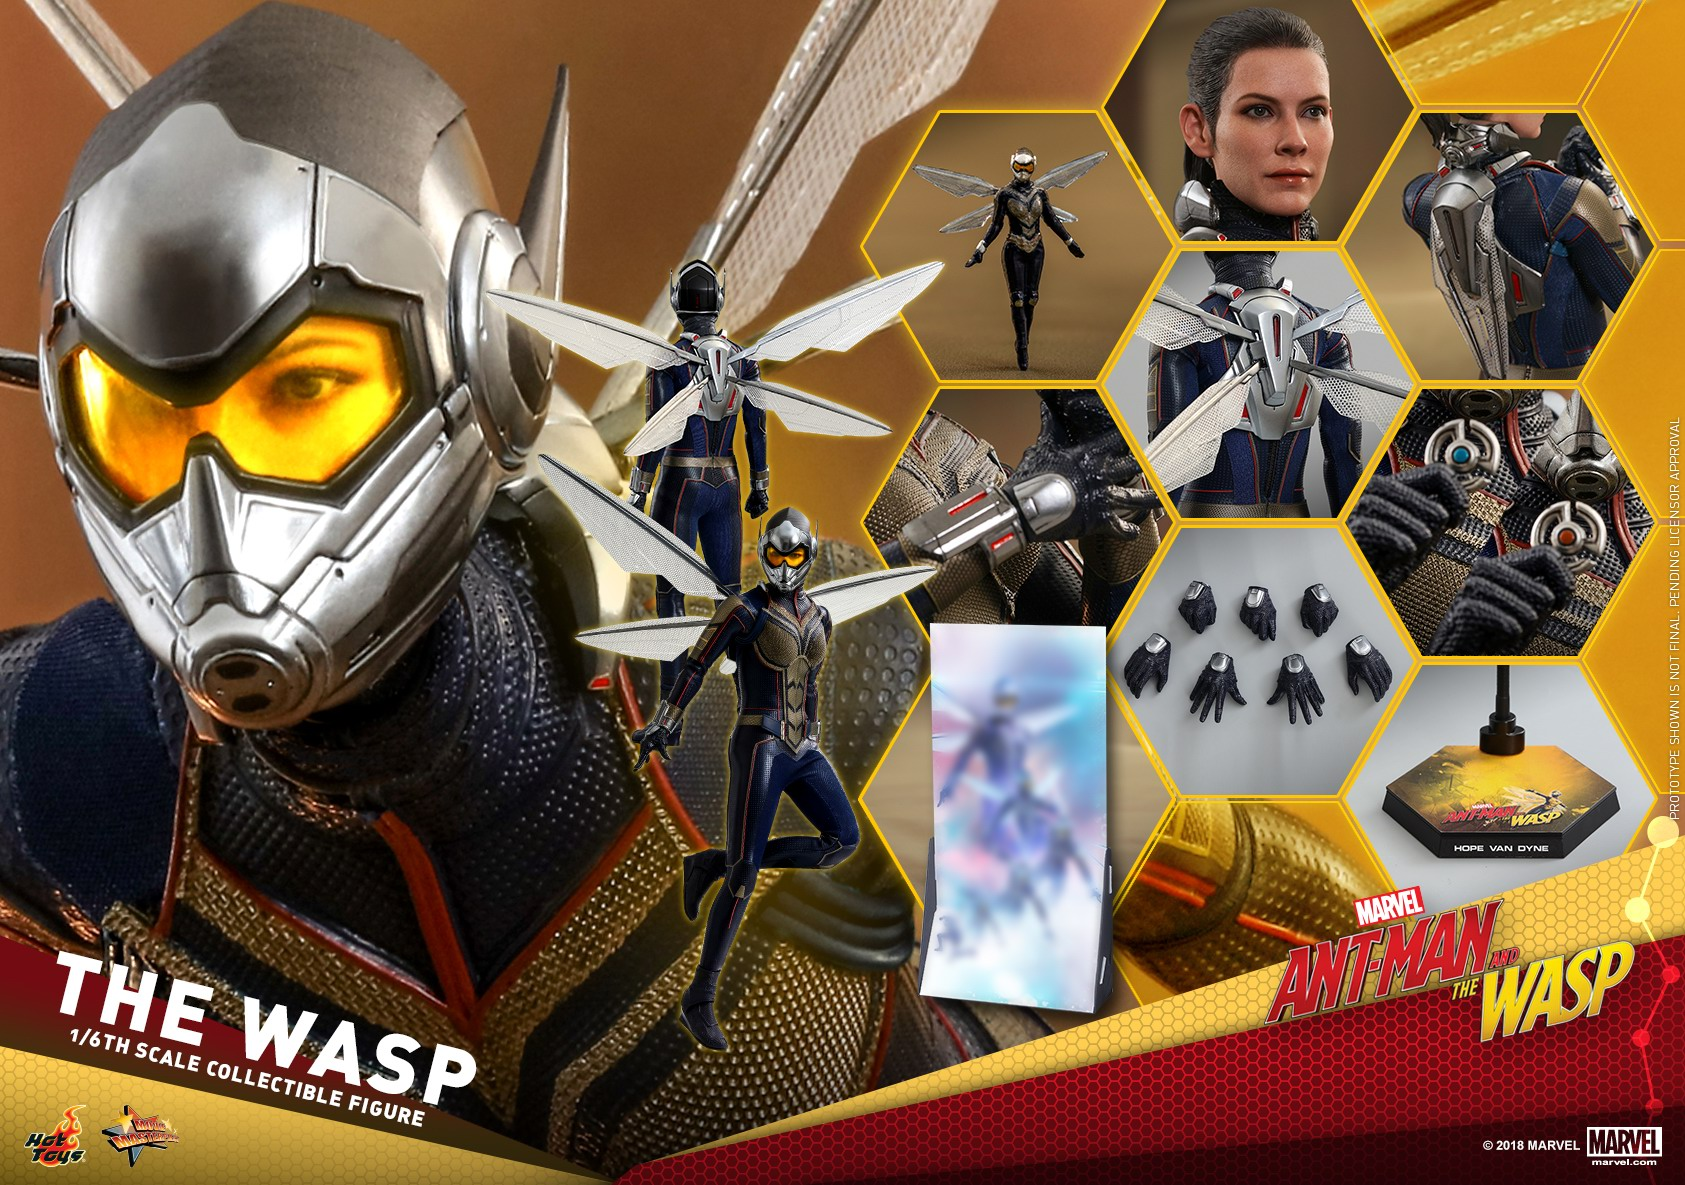 Hot-Toys-Ant-Man-and-The-Wasp-The-Wasp-Collectible-Figure_PR29.jpg